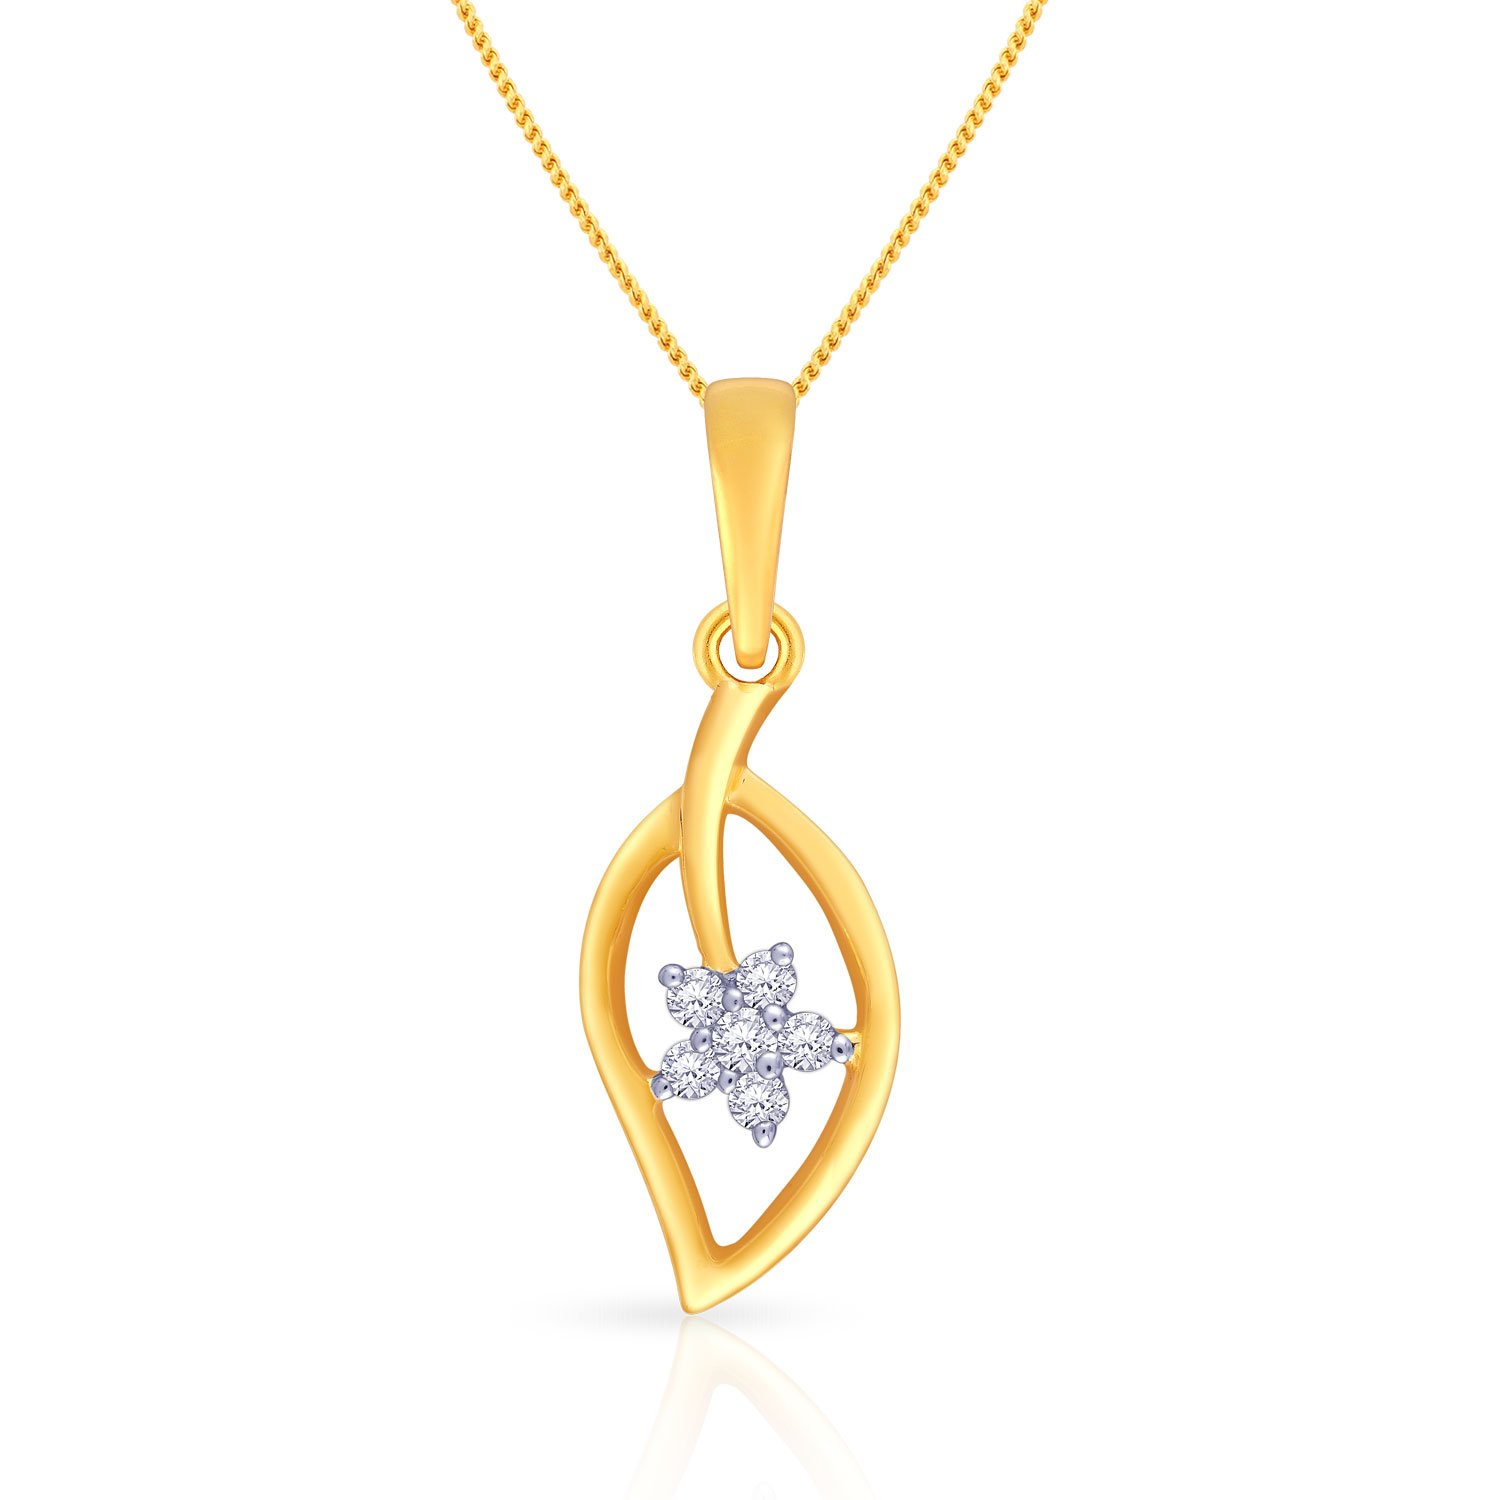 Malabar Gold and Diamonds 18k Yellow Gold and Diamond Pendant low price